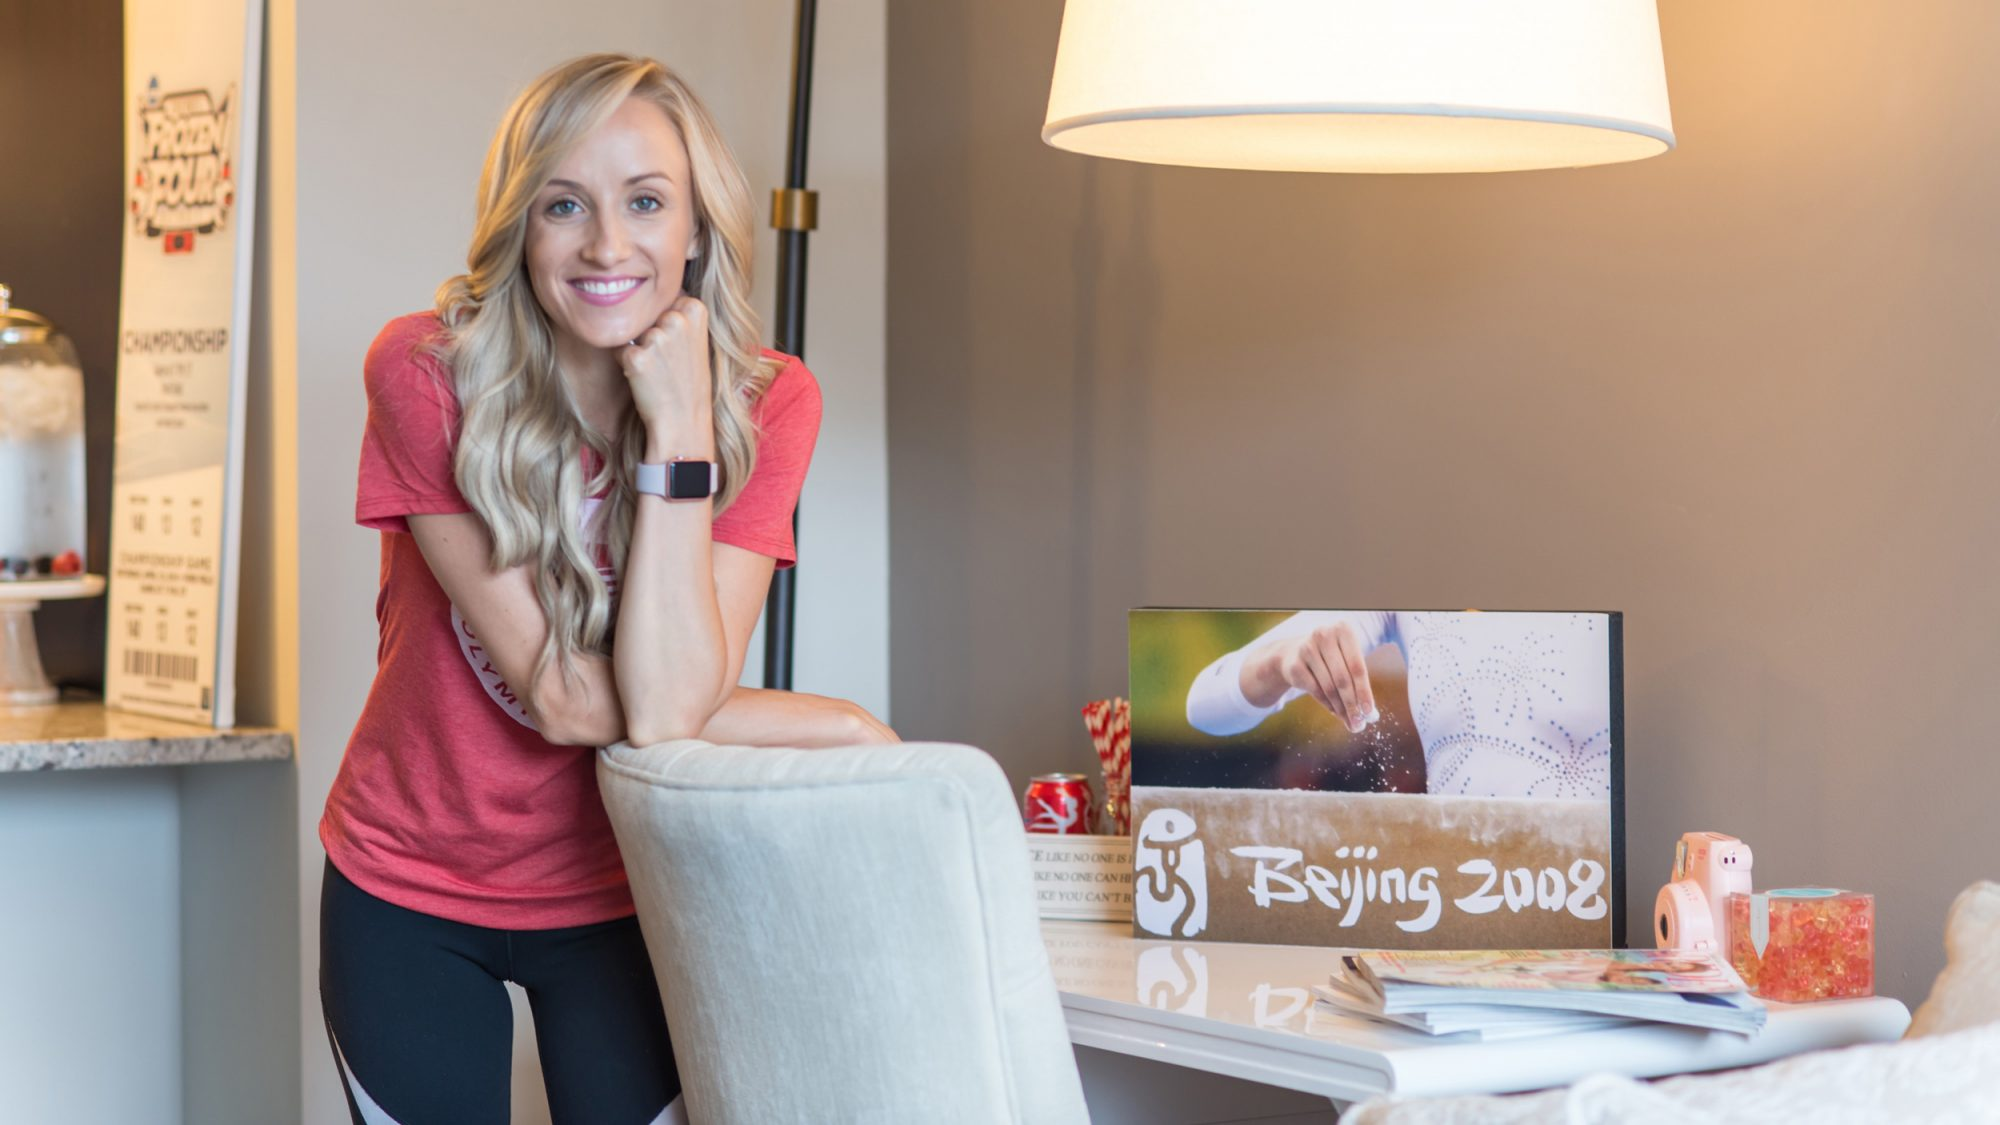 You Can Stay at Olympic Gymnast Nastia Liukin's Home